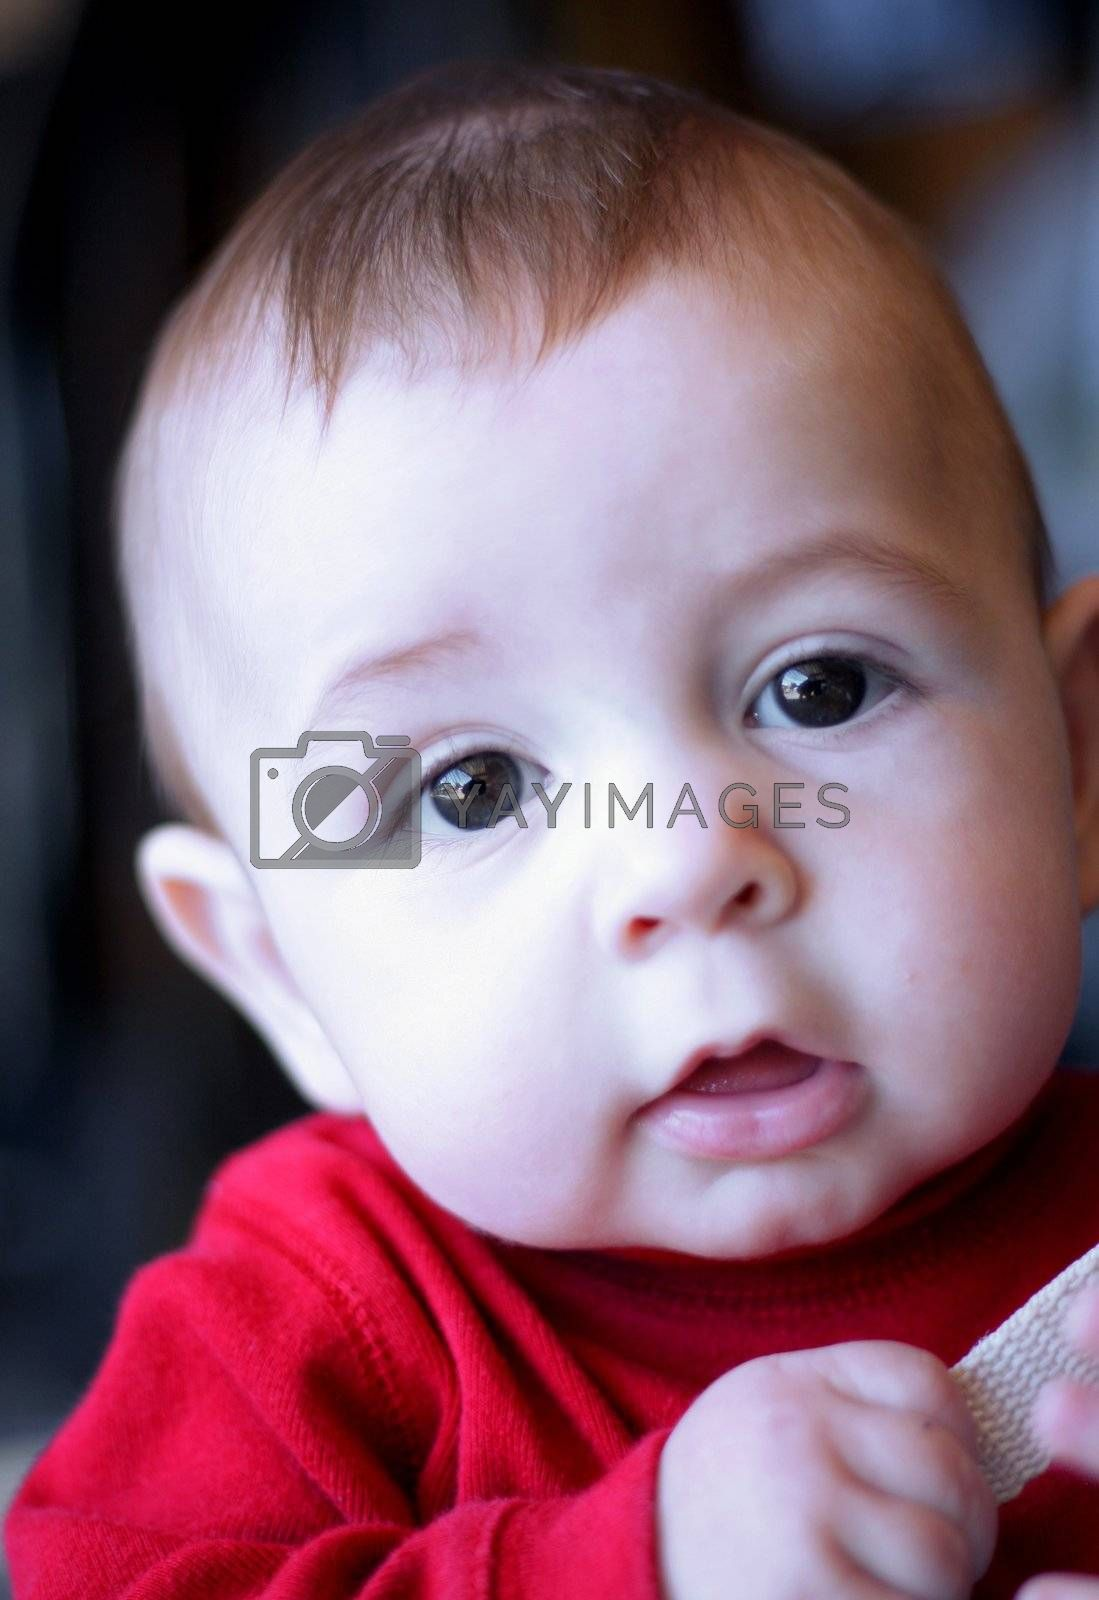 Adorable six month old baby boy looking intently at camera.